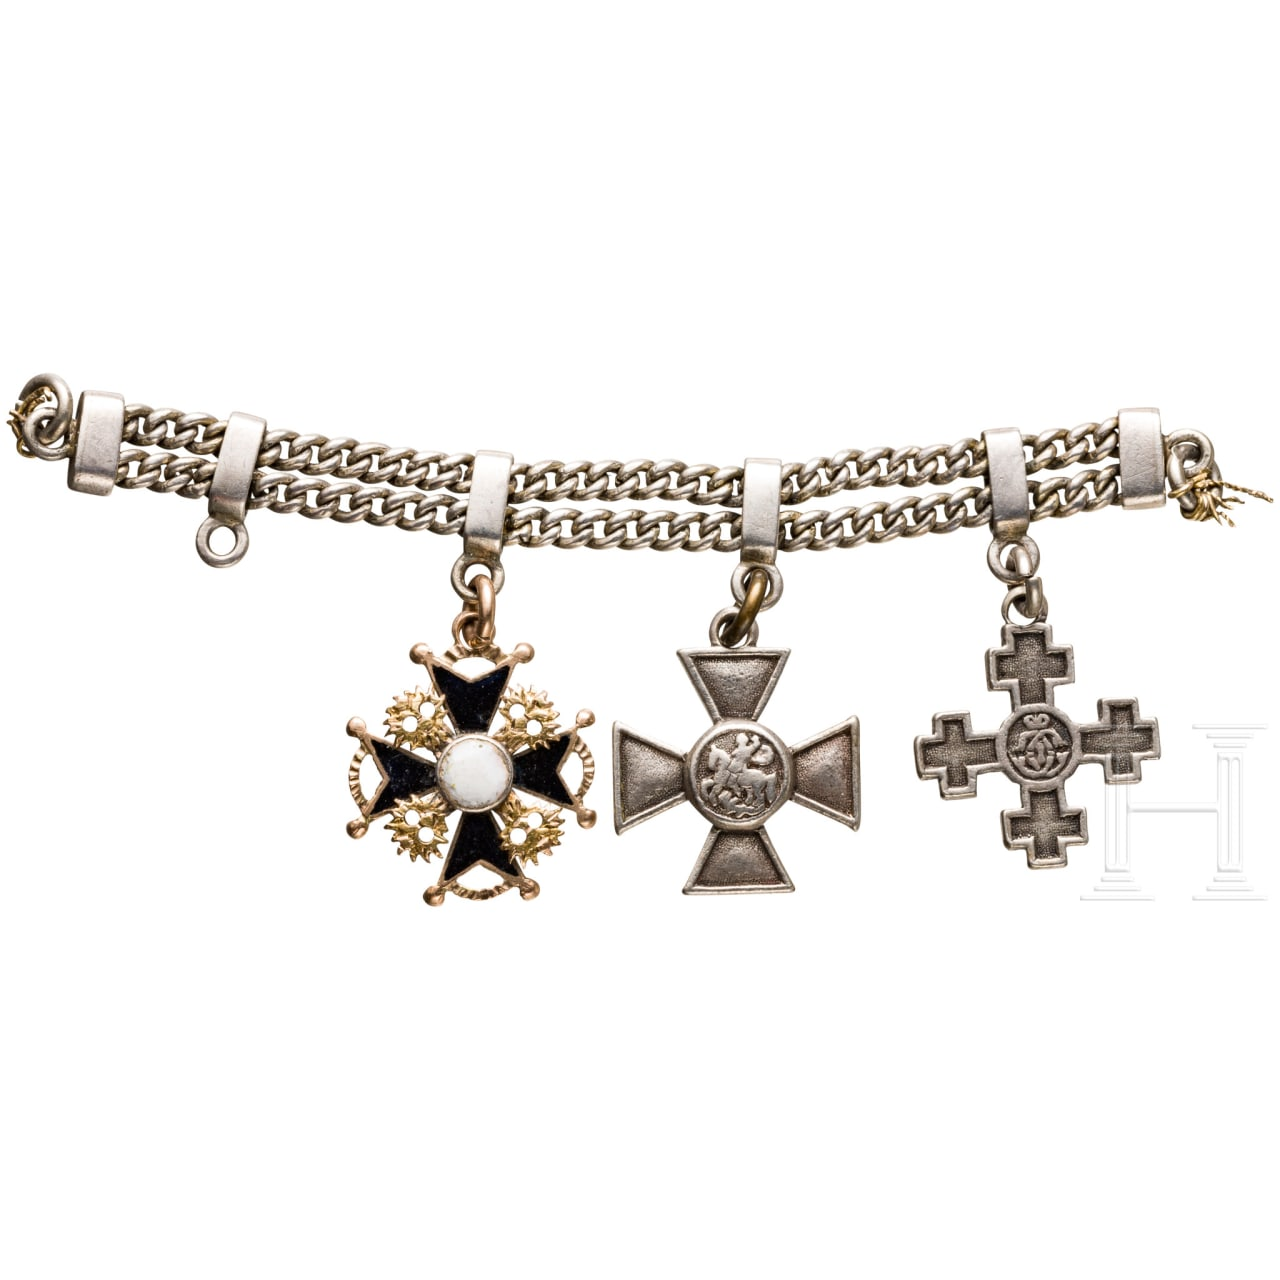 Threepart miniature chain with St. Stanislaus- St. George's Order and the Danube Transition Cross, possibly Russia around 1900